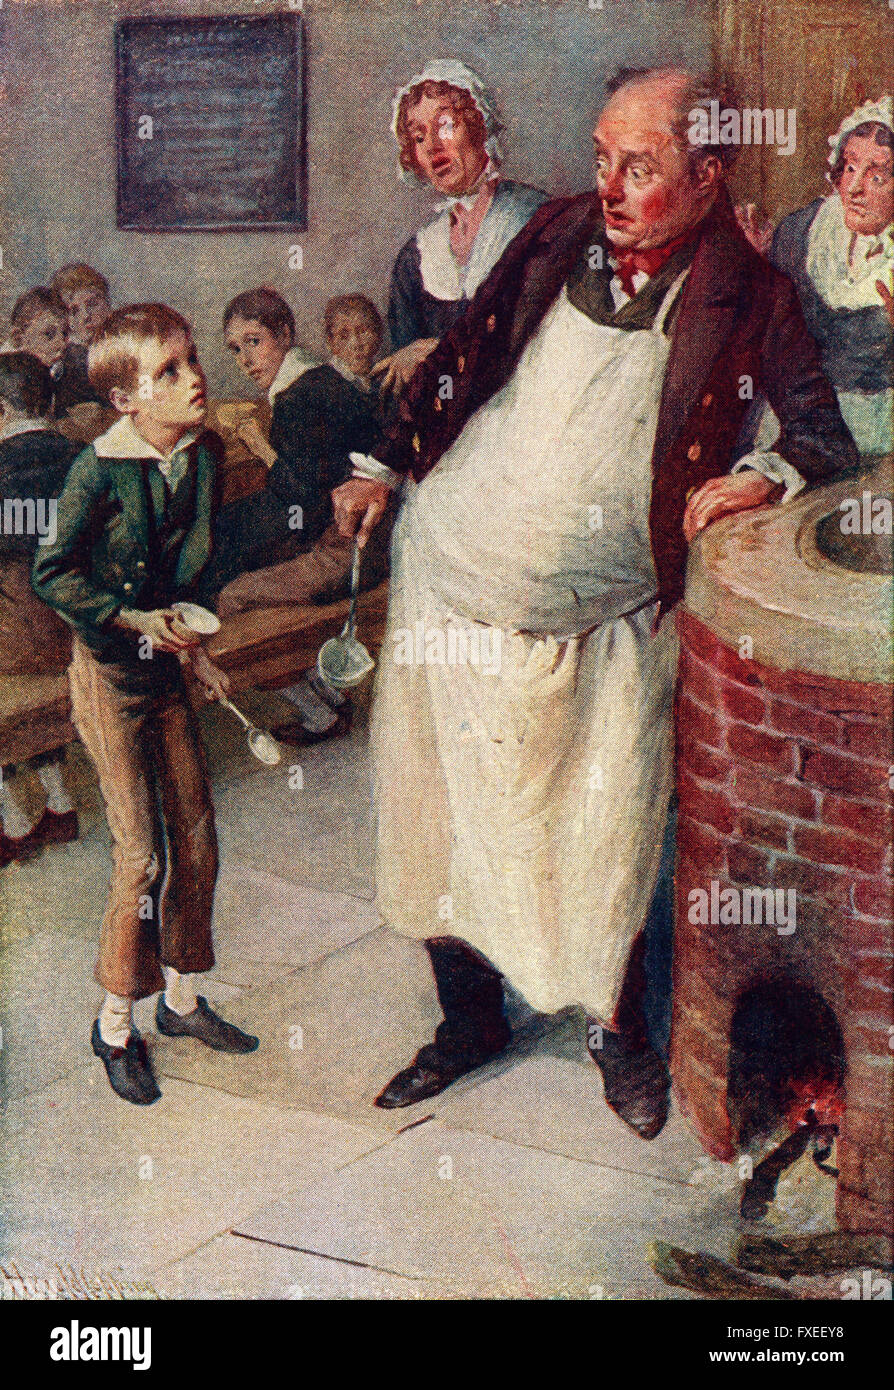 oliver twist stock photos oliver twist stock images alamy oliver twist asks for more illustration by harold copping stock image